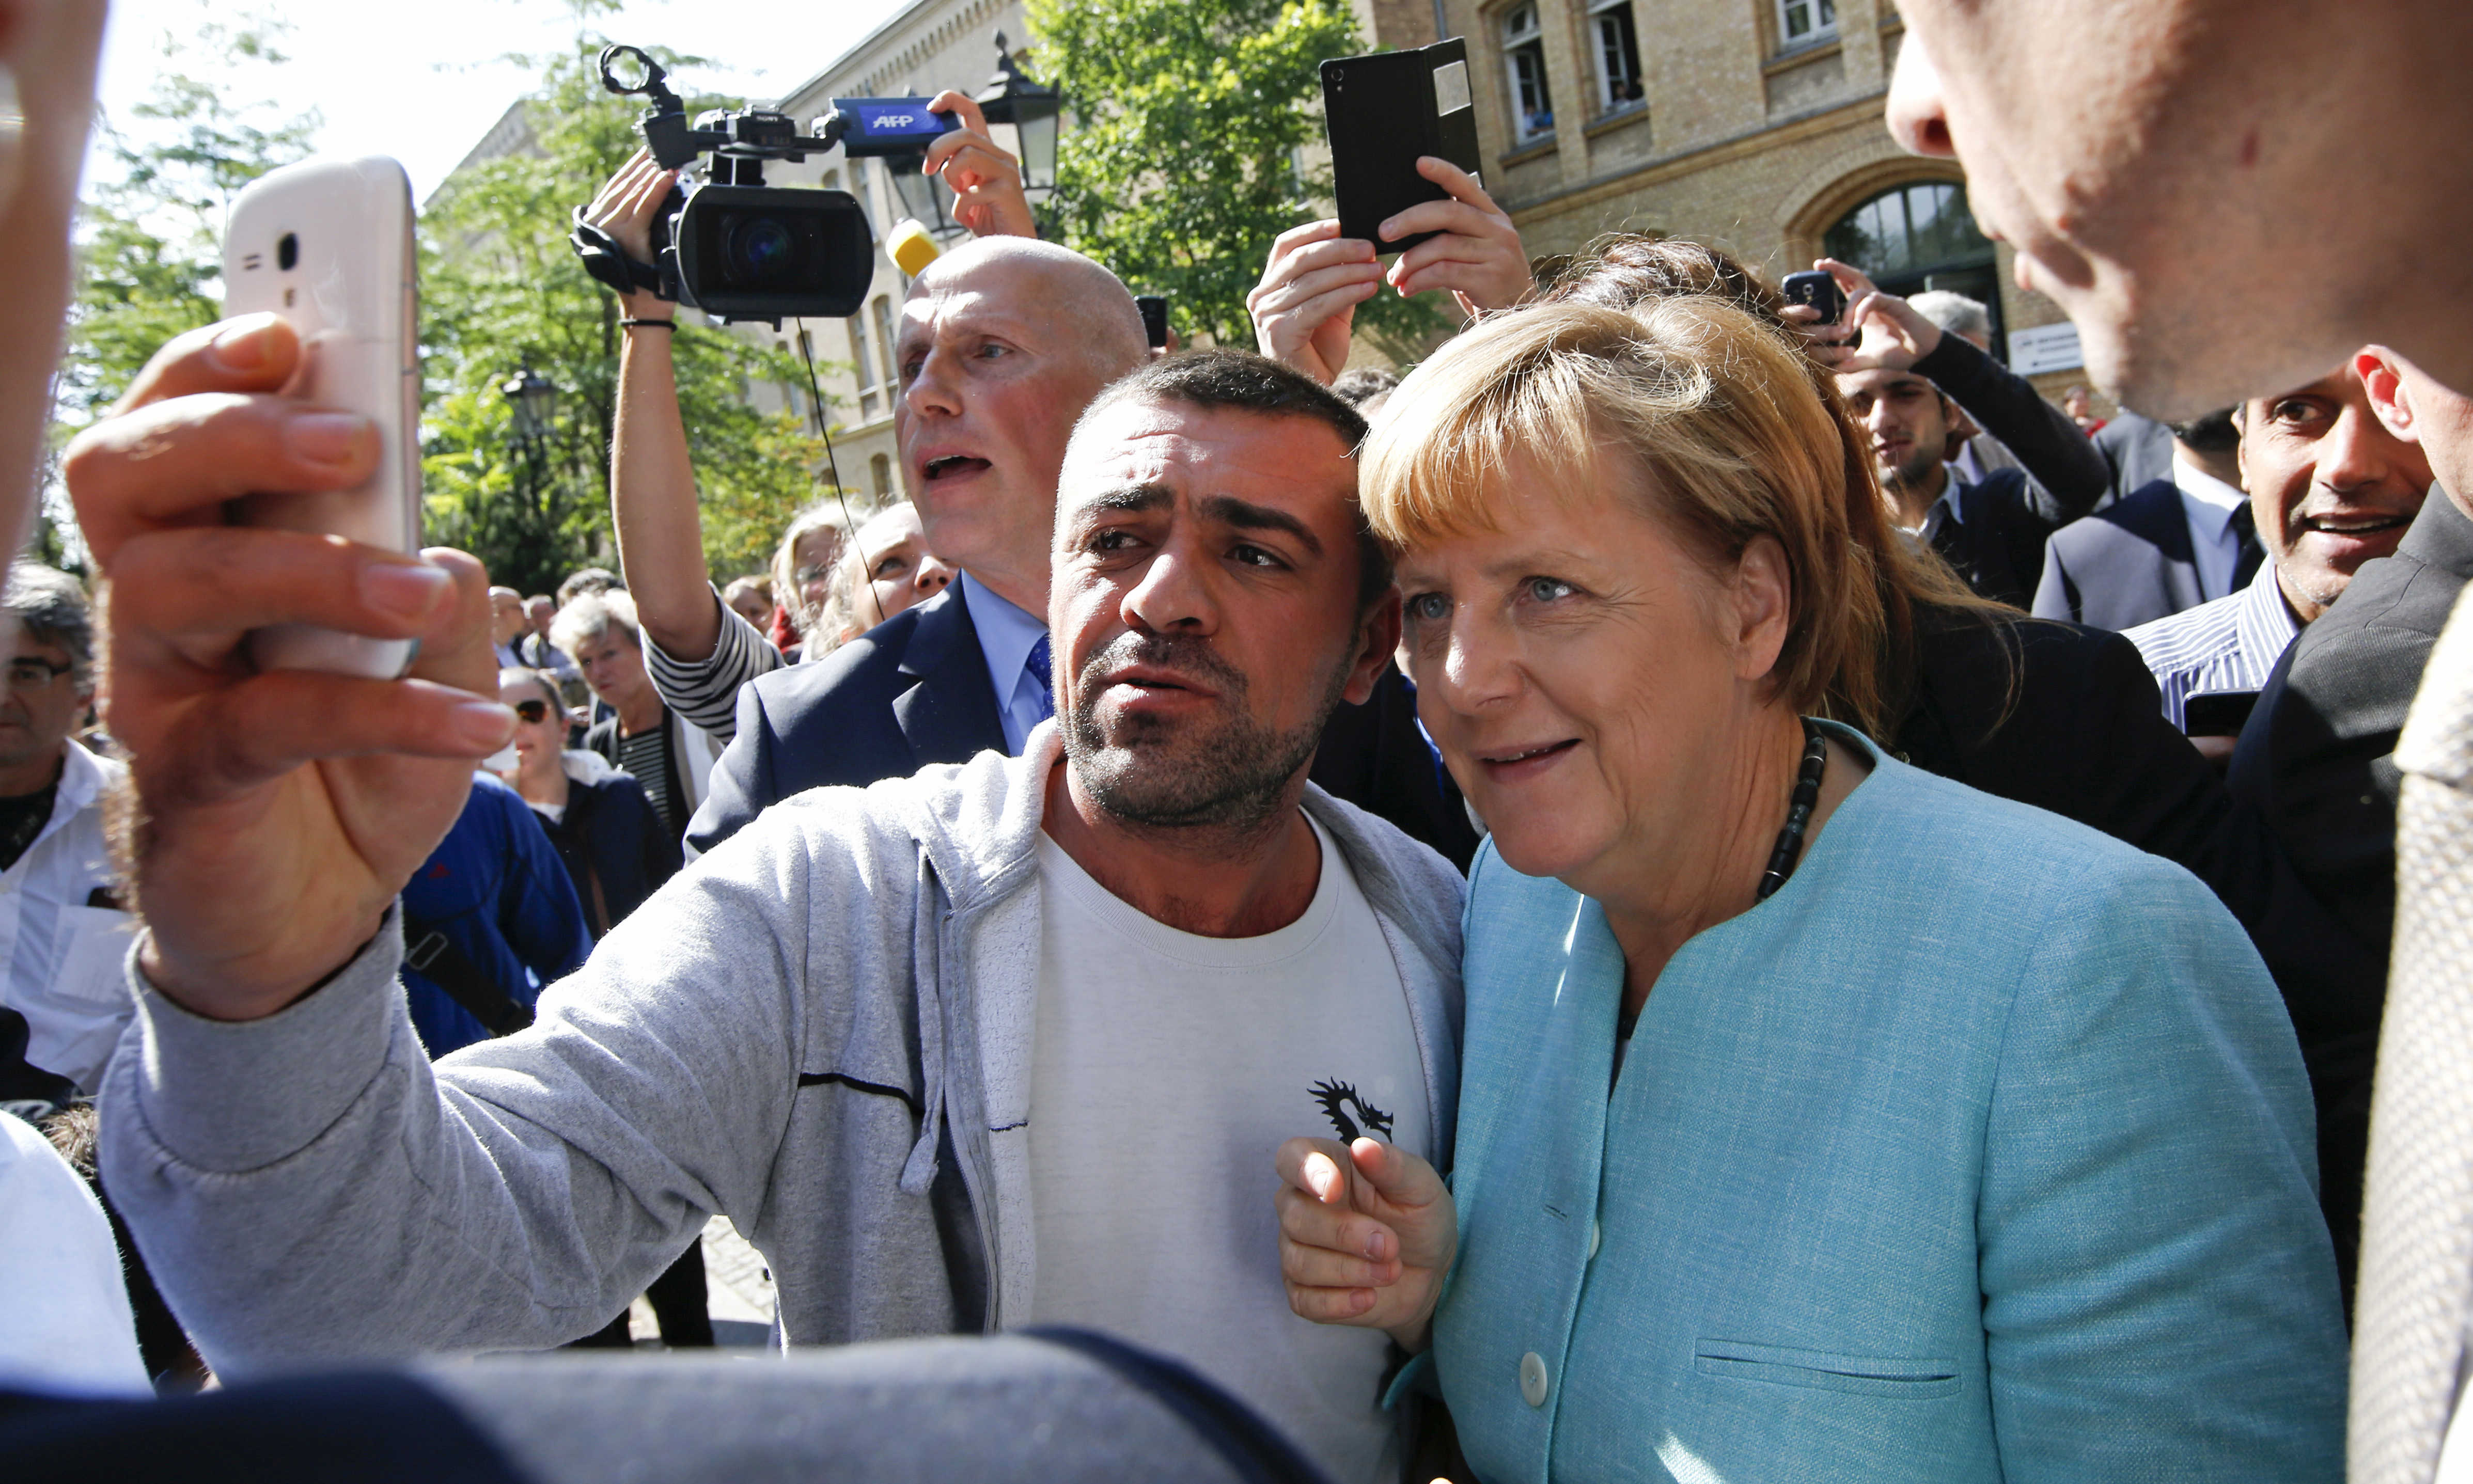 A migrant takes a selfie with German Chancellor Angela Merkel outside a refugee camp near the Federal Office for Migration and Refugees after registration at Berlin's Spandau district, Germany, Sept. 10, 2015.